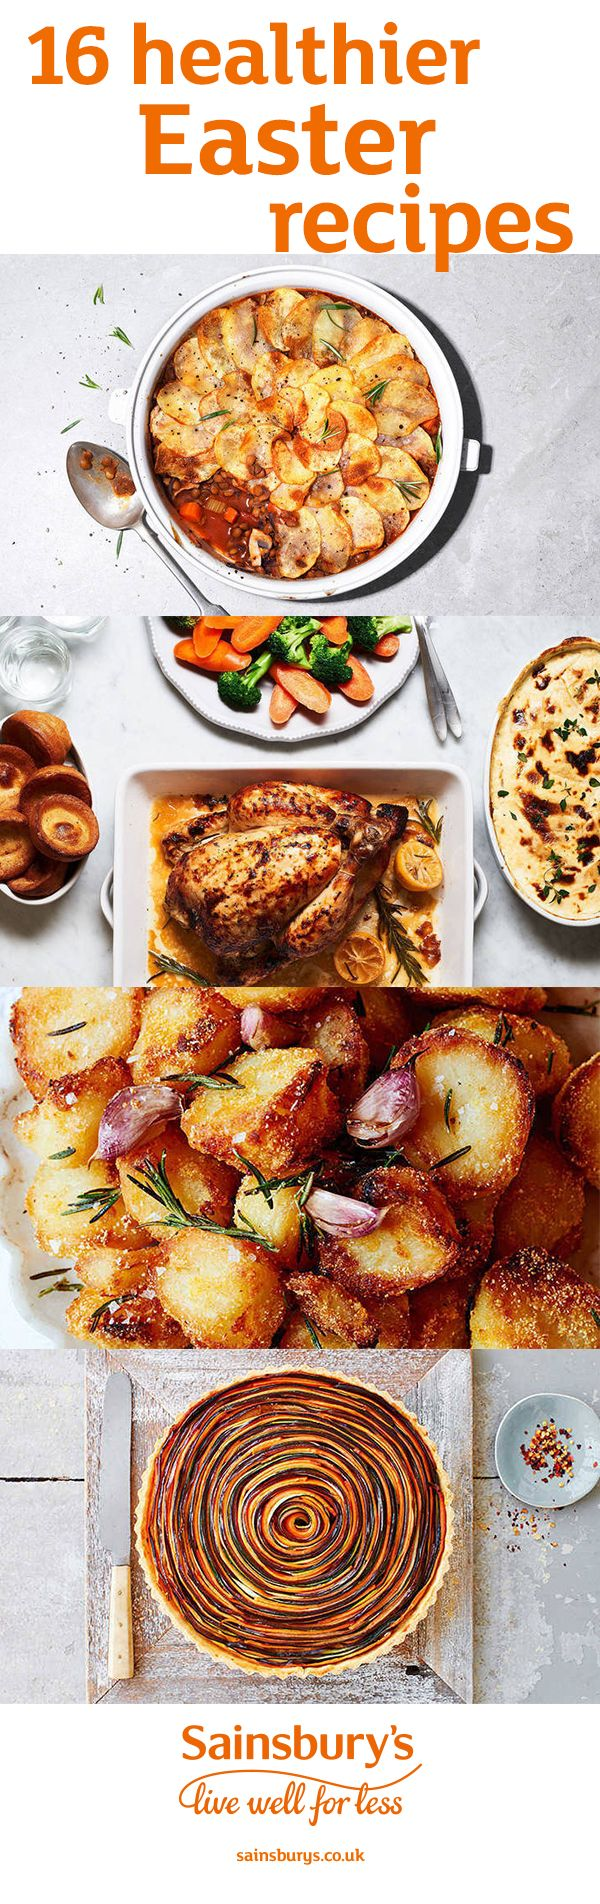 Fill your Easter weekend with healthier recipes, including giant Yorkshire puds with all the trimmings, perfectly crunchy roast potatoes, vegetable tart, whole roasted cauliflower, decadent strawberry Fraisier cakes and fluffy hot cross buns. These Easter recipes are all under 500 calories per serving.